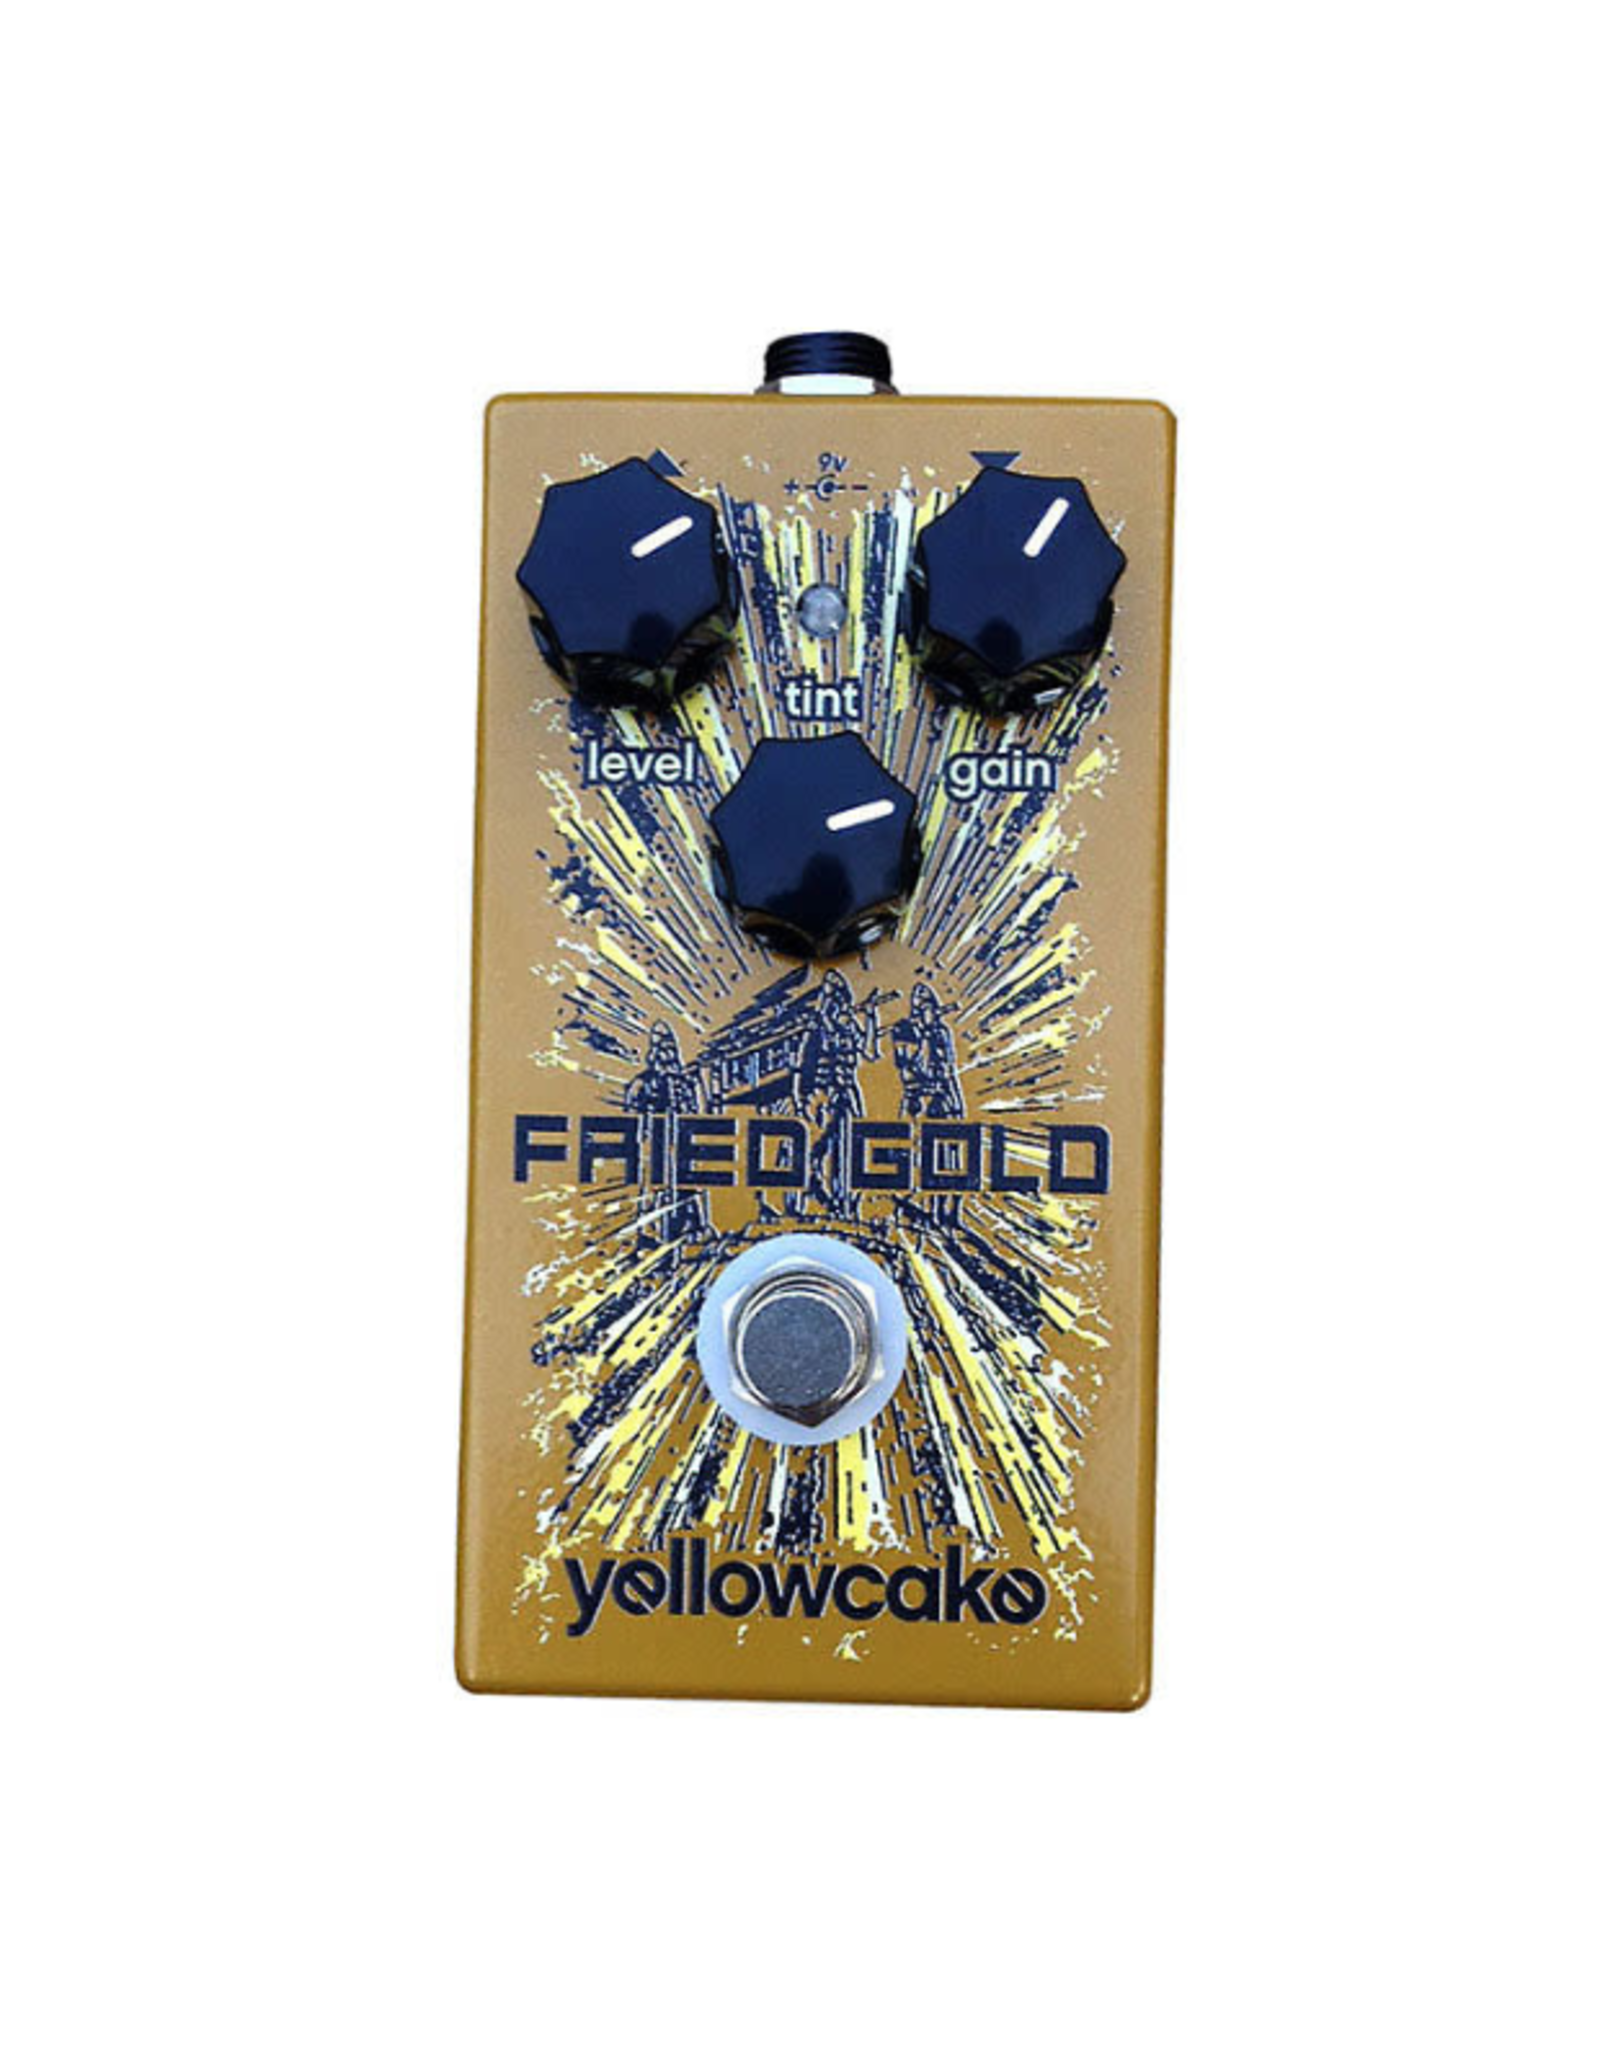 Yellowcake Yellowcake Fried Gold Overdrive - Store Demo